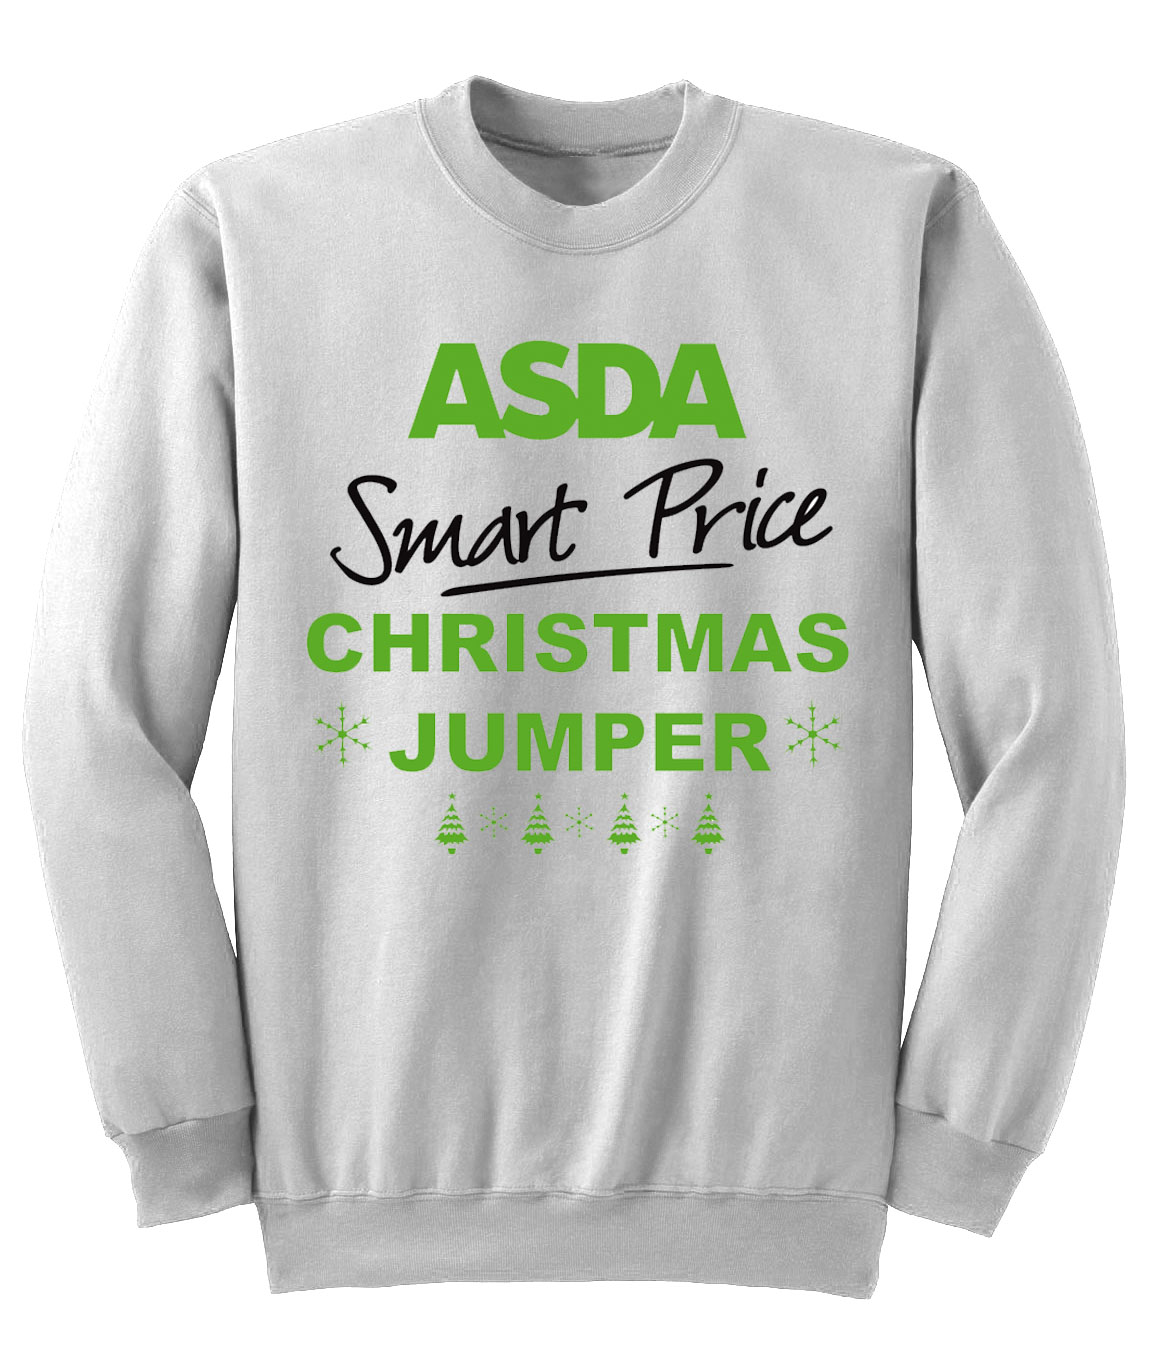 Asda smart price funny christmas jumper sweatshirt new s for Smart price